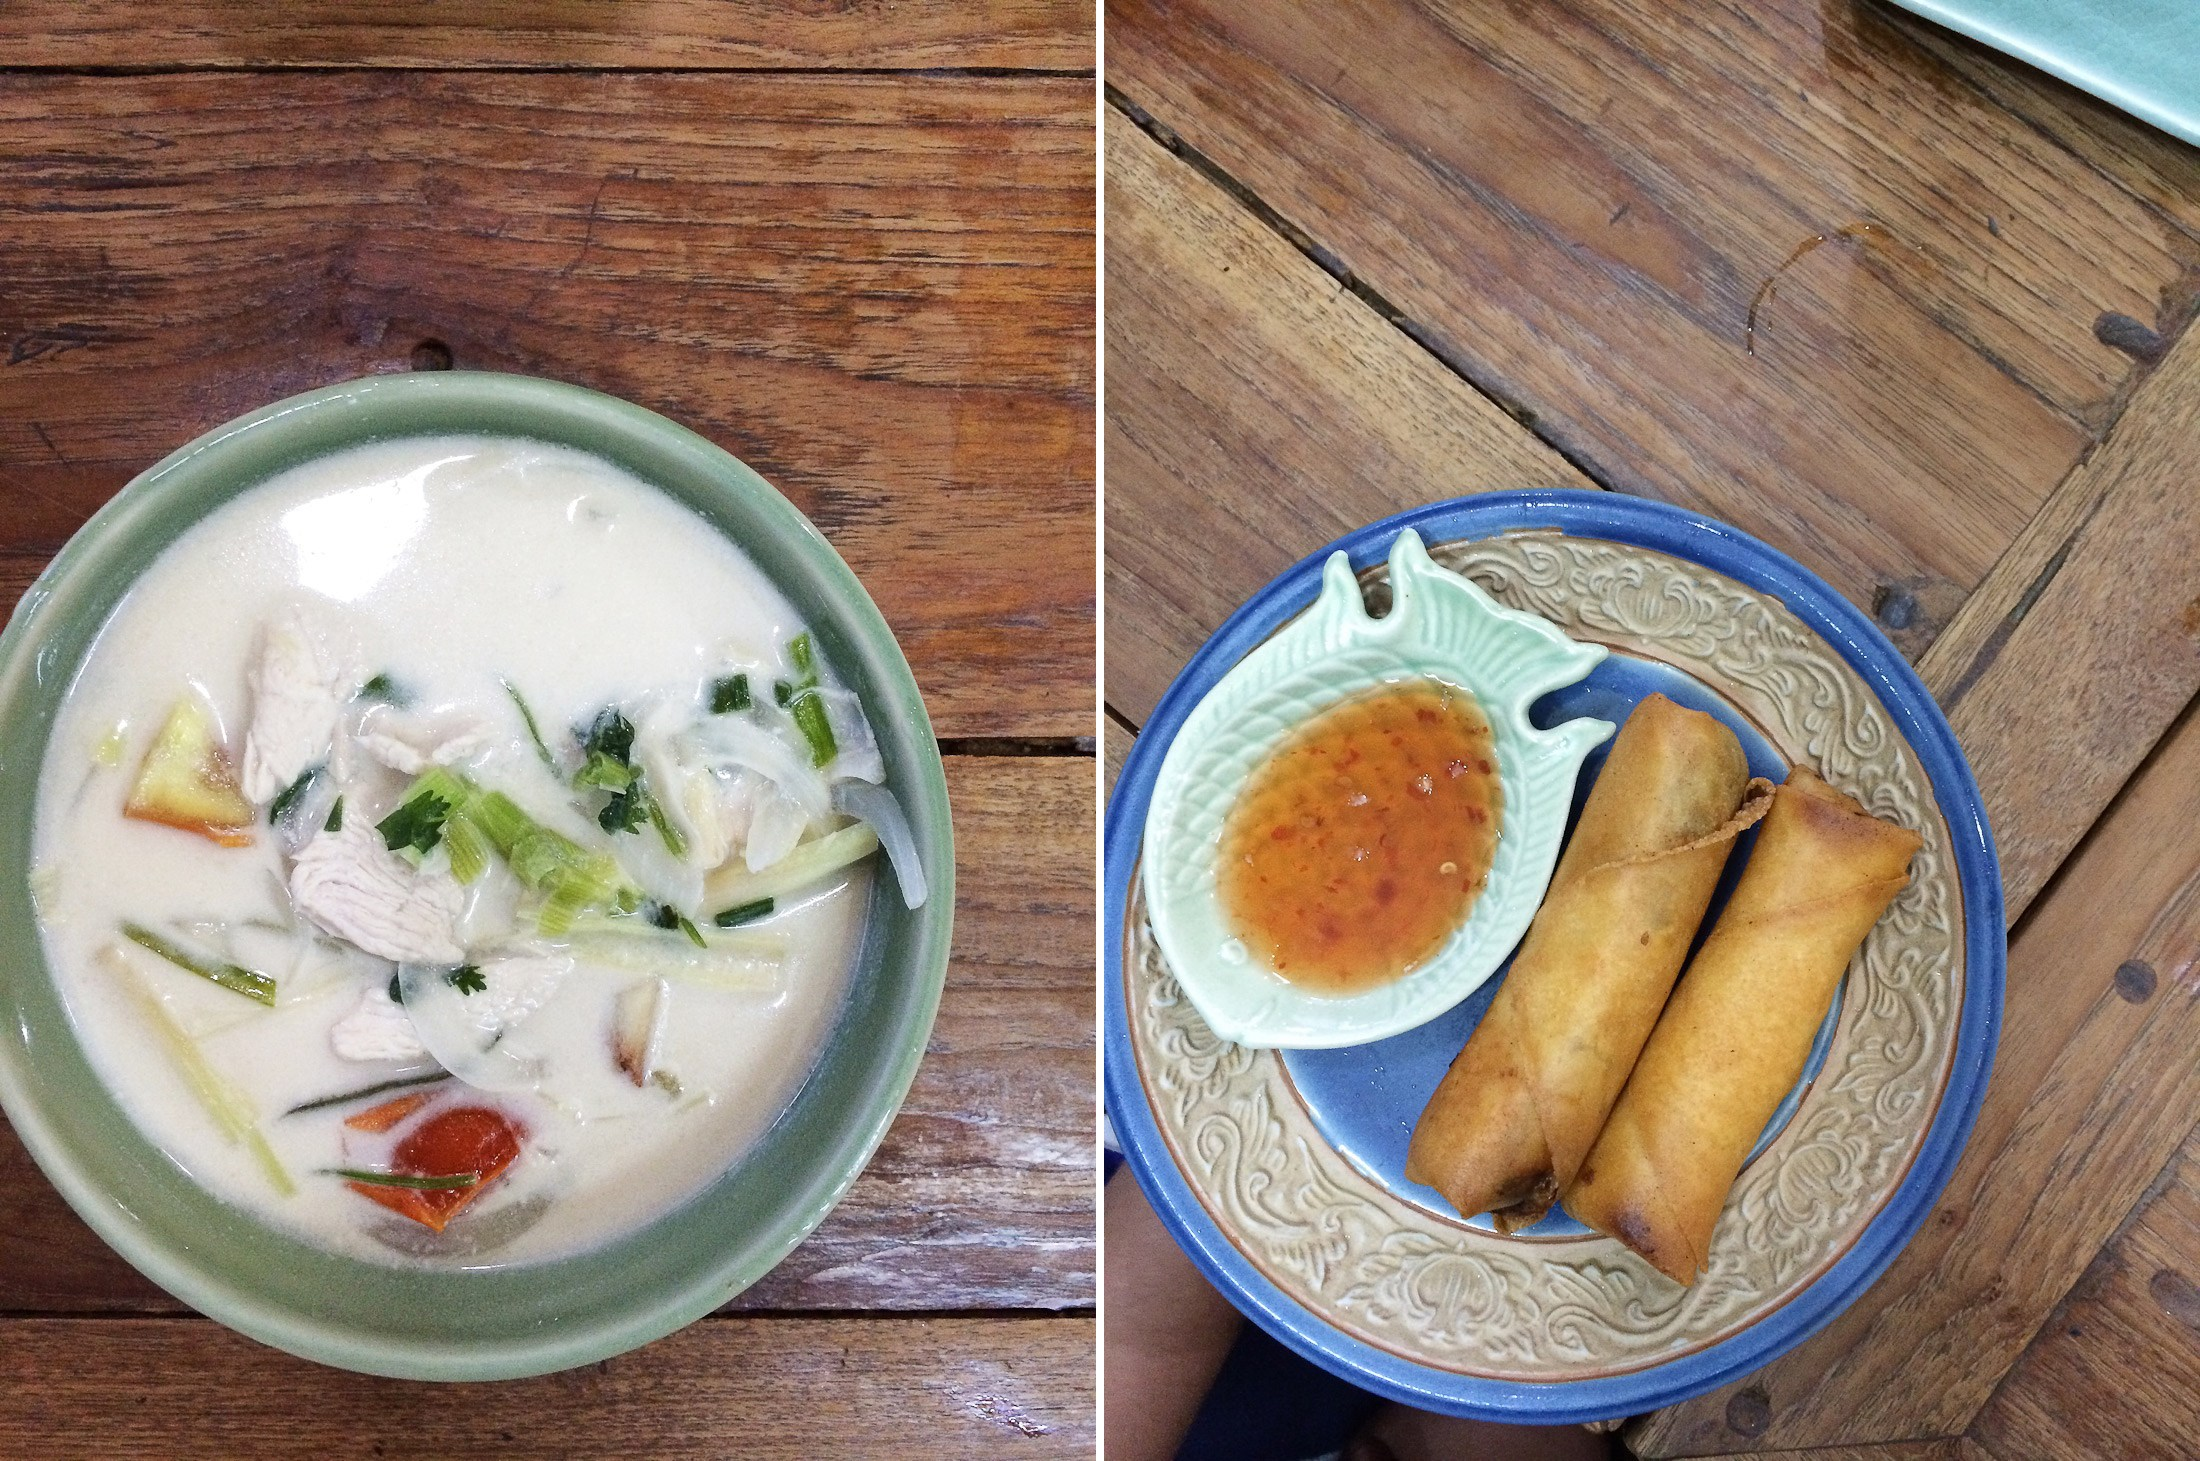 thailand chiang mai thai cooking class food spring rolls coconut curry soup sher she goes